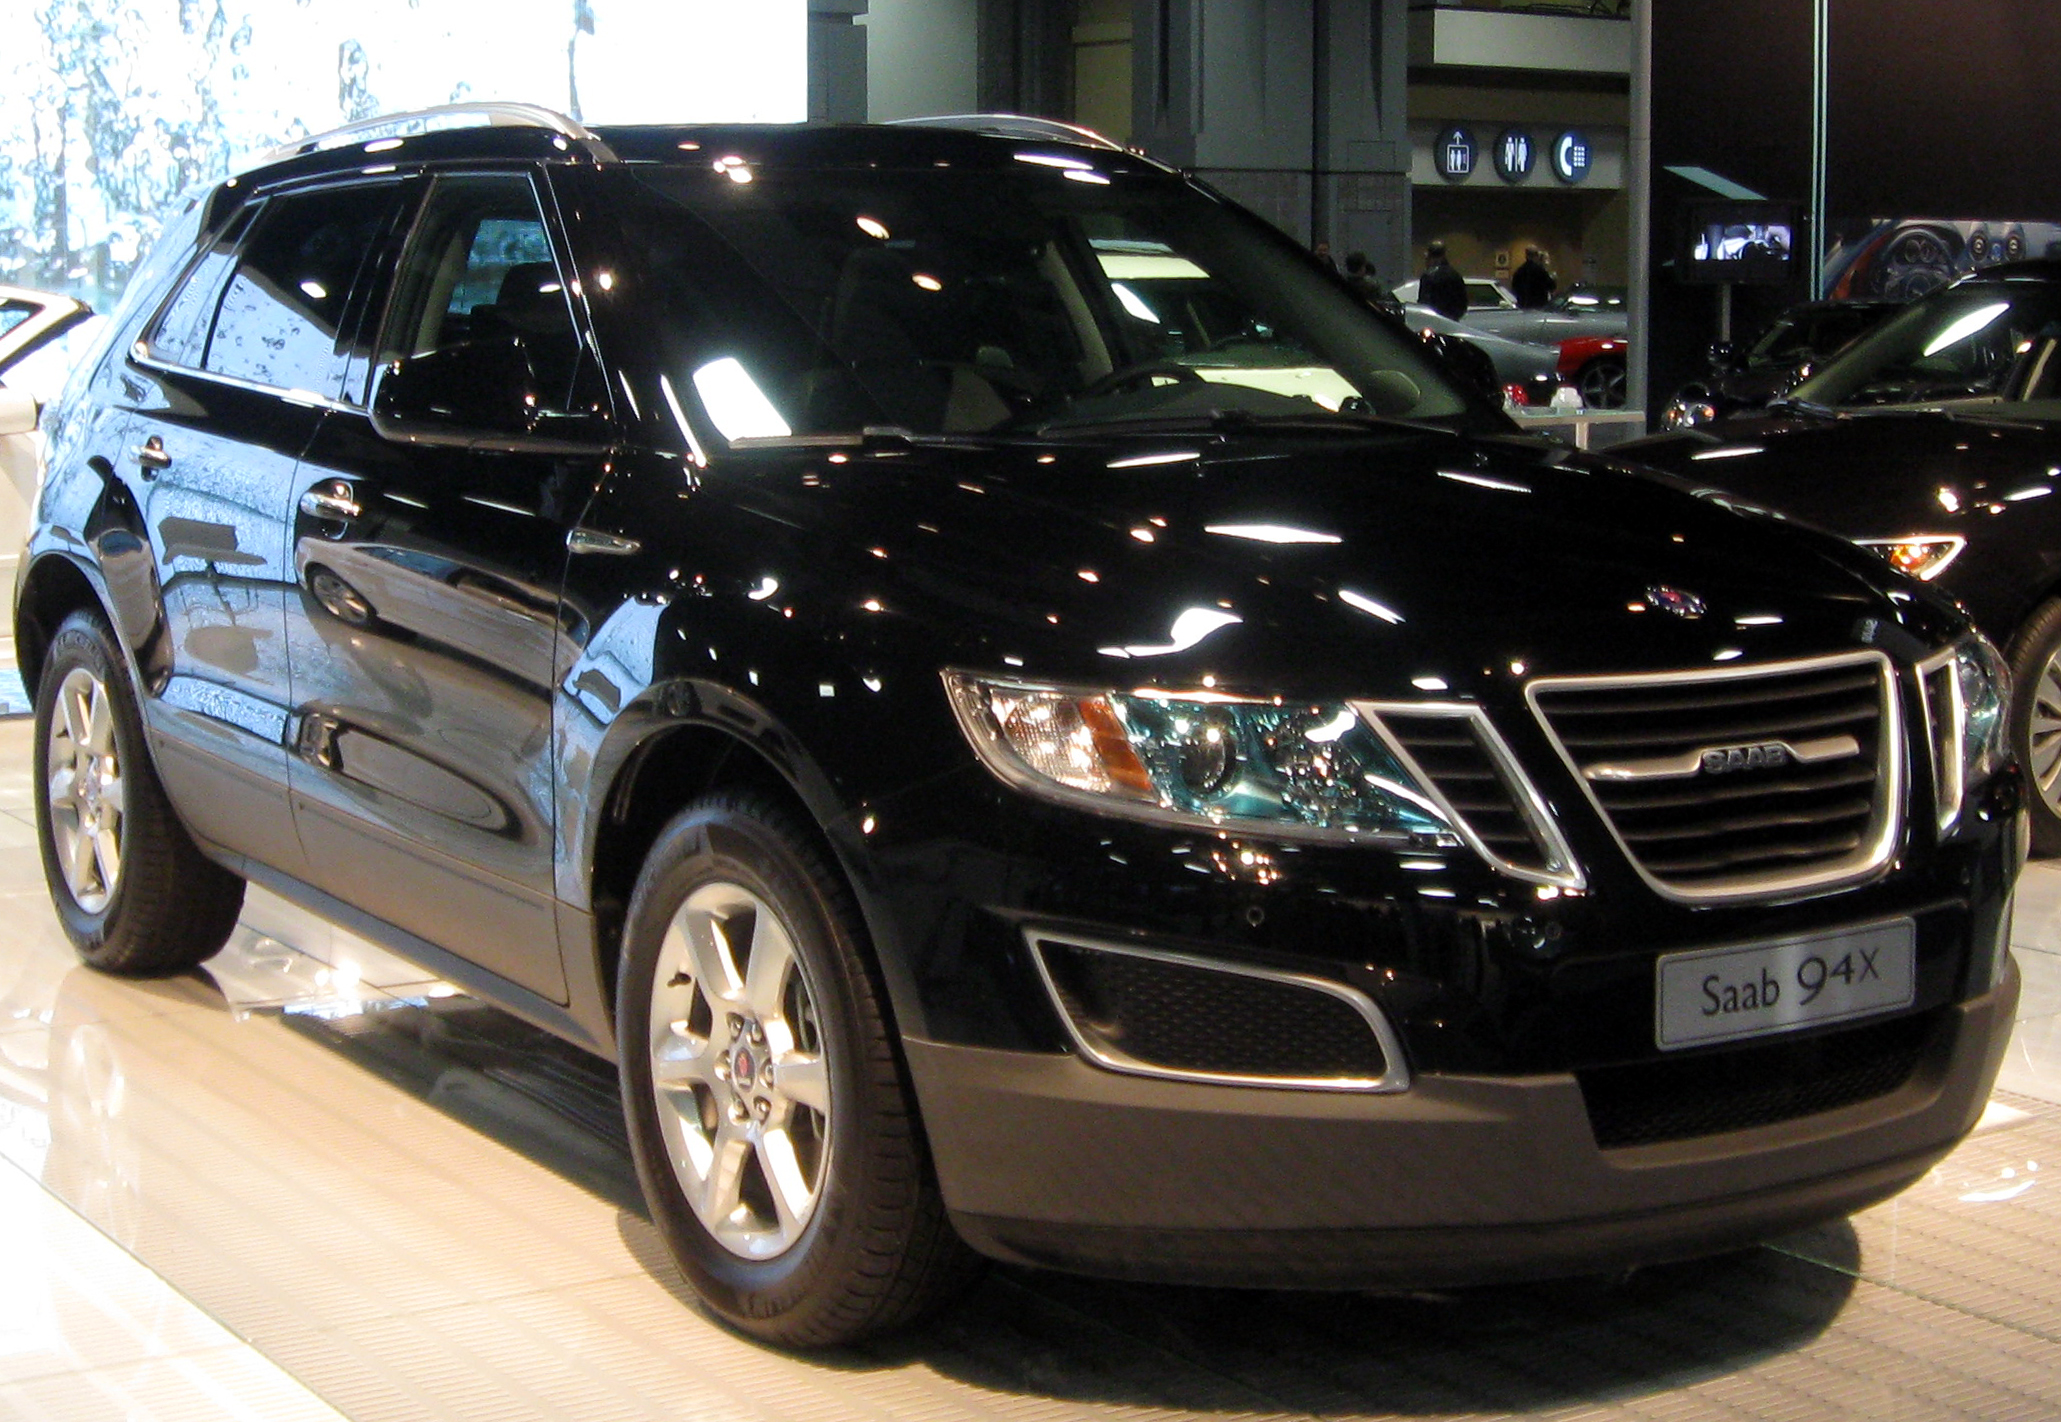 2011 Saab 9 4x also 231536270744 in addition 2015 further Ford 3 5l Engine Bank 1 likewise Carter WCFB ep 313. on saab 9 3 specifications